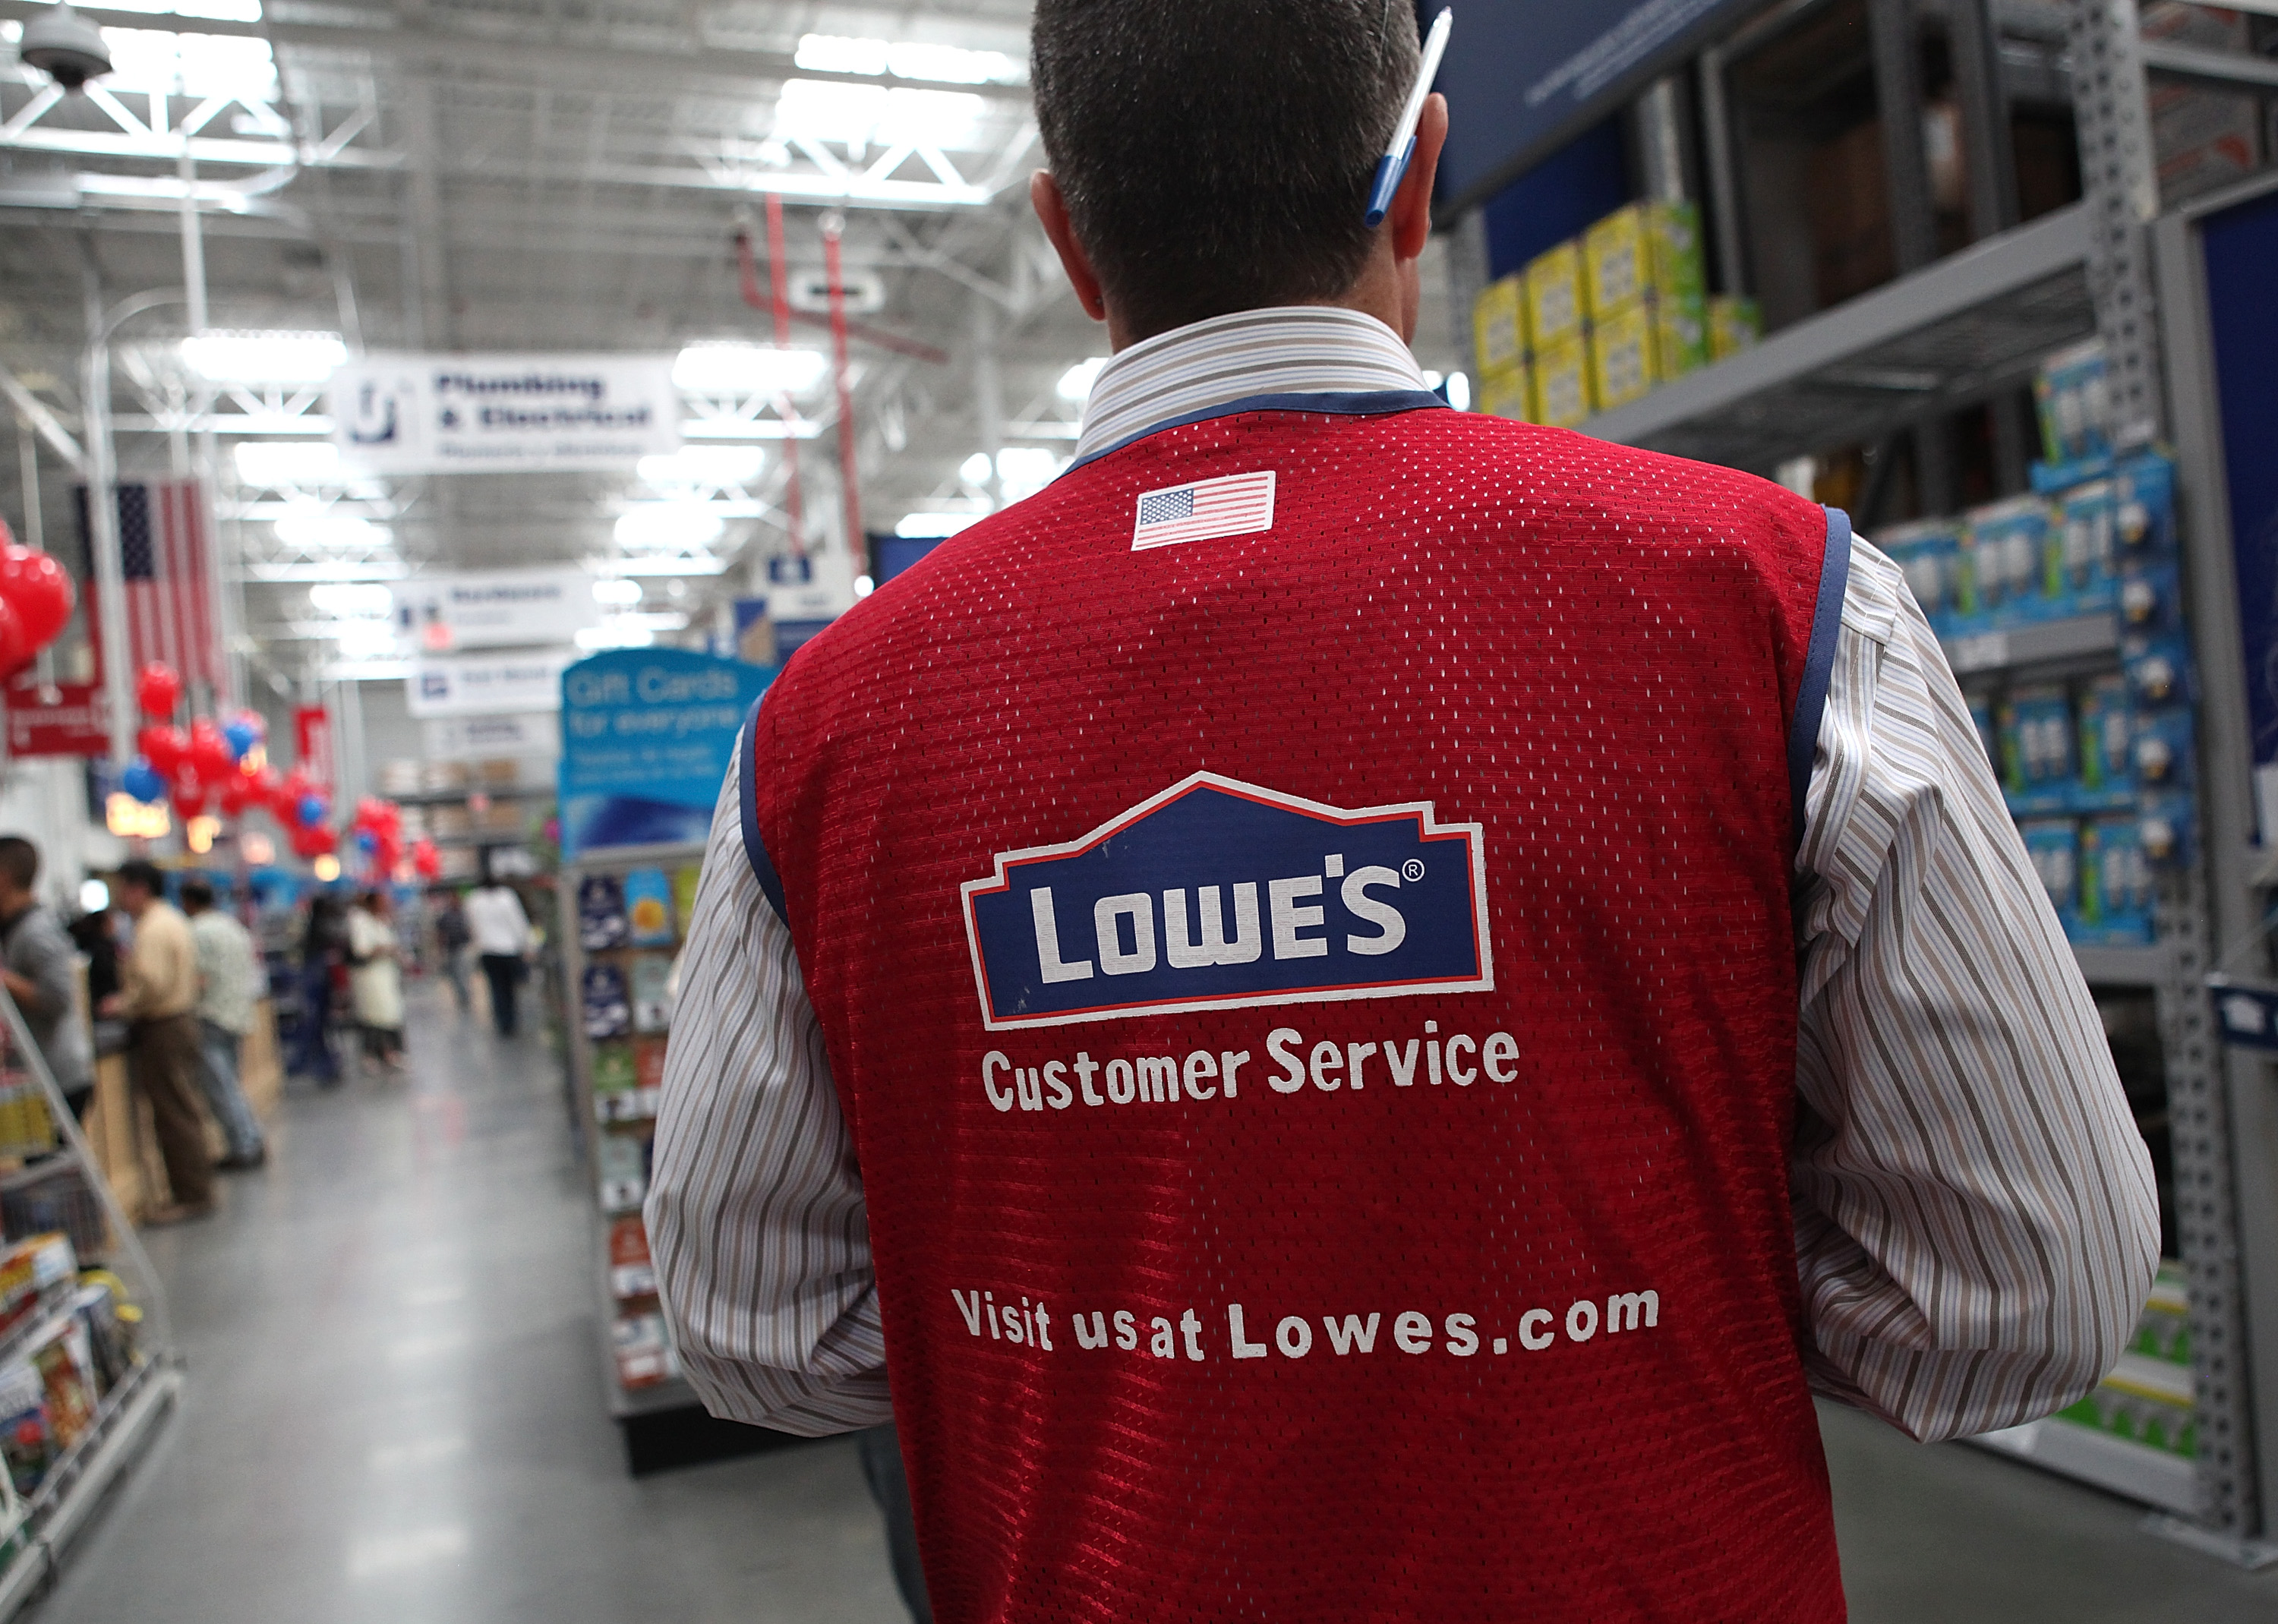 Lowe's quarterly earnings, sales below Wall Street's forecasts